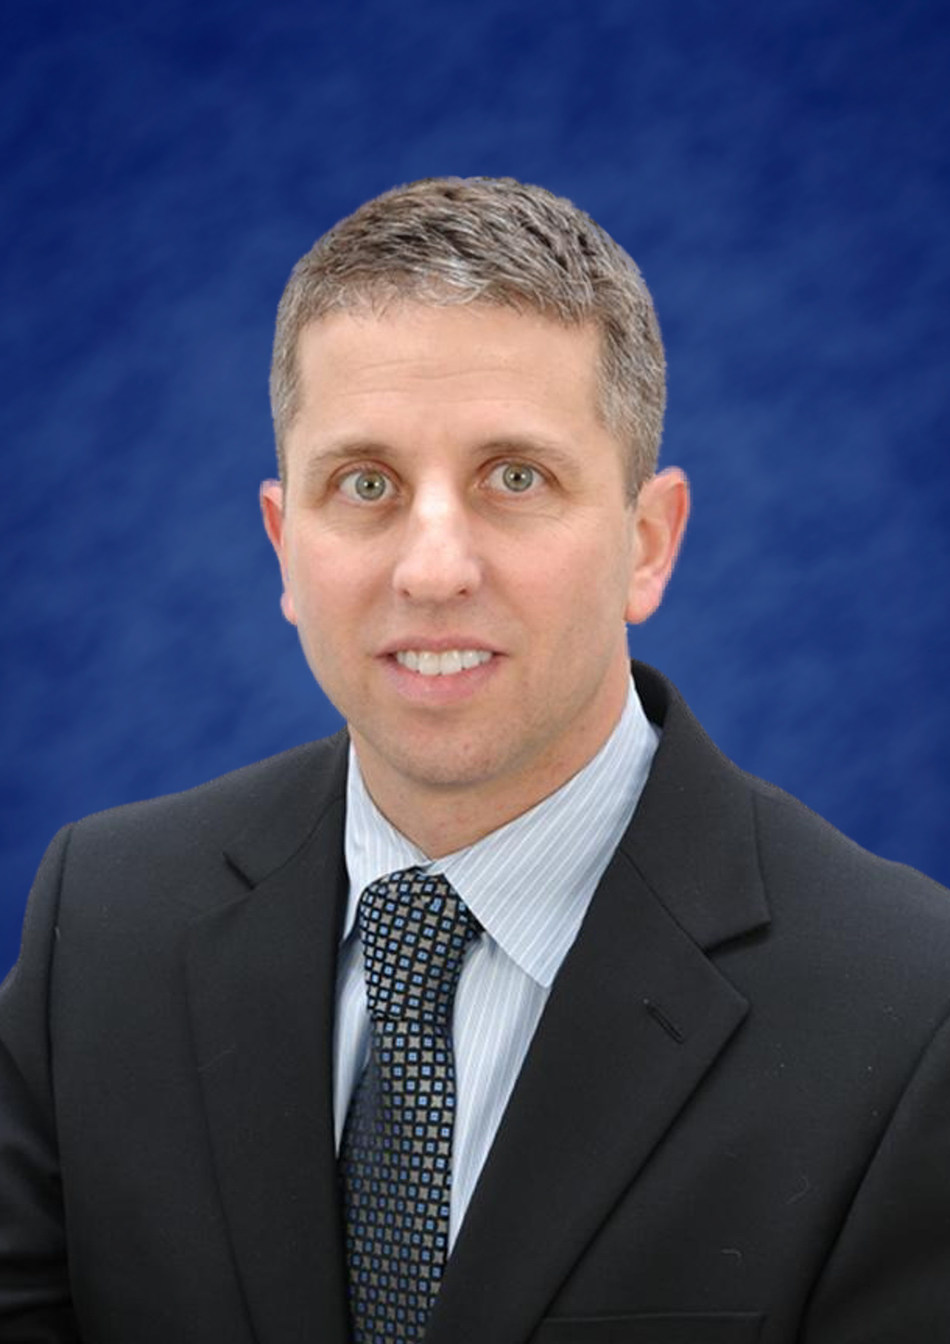 WellCare of Kentucky's medical director Dr. Howard Shaps has been appointed to serve on a newly formed National Quality Forum (NQF) technical expert panel for the organization's Medicaid Innovation Accelerator Project.